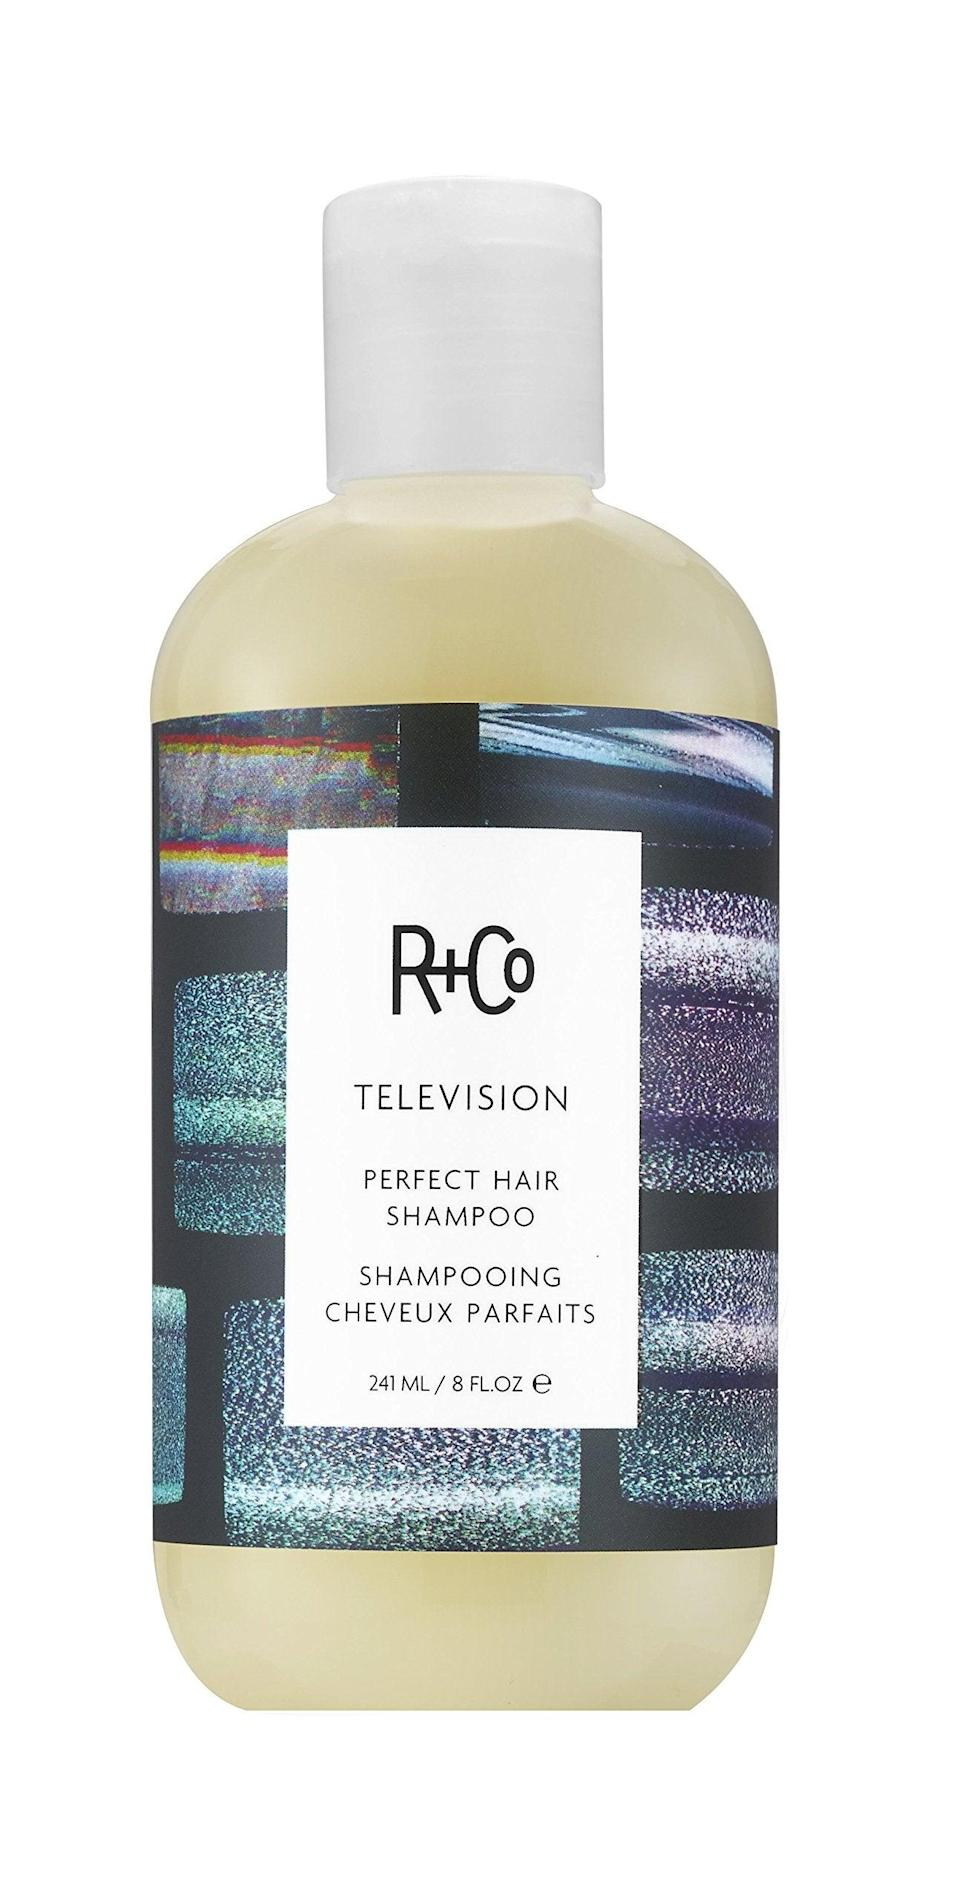 """<h2>30% Off R+Co Television Perfect Hair Shampoo</h2><br>""""Hi, I'm Karina — the R29 shopping team's resident beauty whisperer. So, this stuff is fancy, but if you're looking for shampoo that will actually make your hair look nice, R+Co's Television is that shampoo. I've gone through bottles of the stuff, turned on friends (and friends of friends) to the magical potion, and have even considered leveling up to the comically large <a href=""""https://amzn.to/316zcnY"""" rel=""""nofollow noopener"""" target=""""_blank"""" data-ylk=""""slk:Costco-sized bottle"""" class=""""link rapid-noclick-resp"""">Costco-sized bottle</a>. In addition to hydrating my thick, unruly hair, it also boosts shine for visibly healthy-looking strands. And did I mention, it smells incredible?""""<br><br><em>— Karina Hoshikawa, Beauty and Wellness Writer</em><br><br><strong>R+Co</strong> Television Perfect Hair Shampoo, $, available at <a href=""""https://amzn.to/374Cnk7"""" rel=""""nofollow noopener"""" target=""""_blank"""" data-ylk=""""slk:Amazon"""" class=""""link rapid-noclick-resp"""">Amazon</a>"""